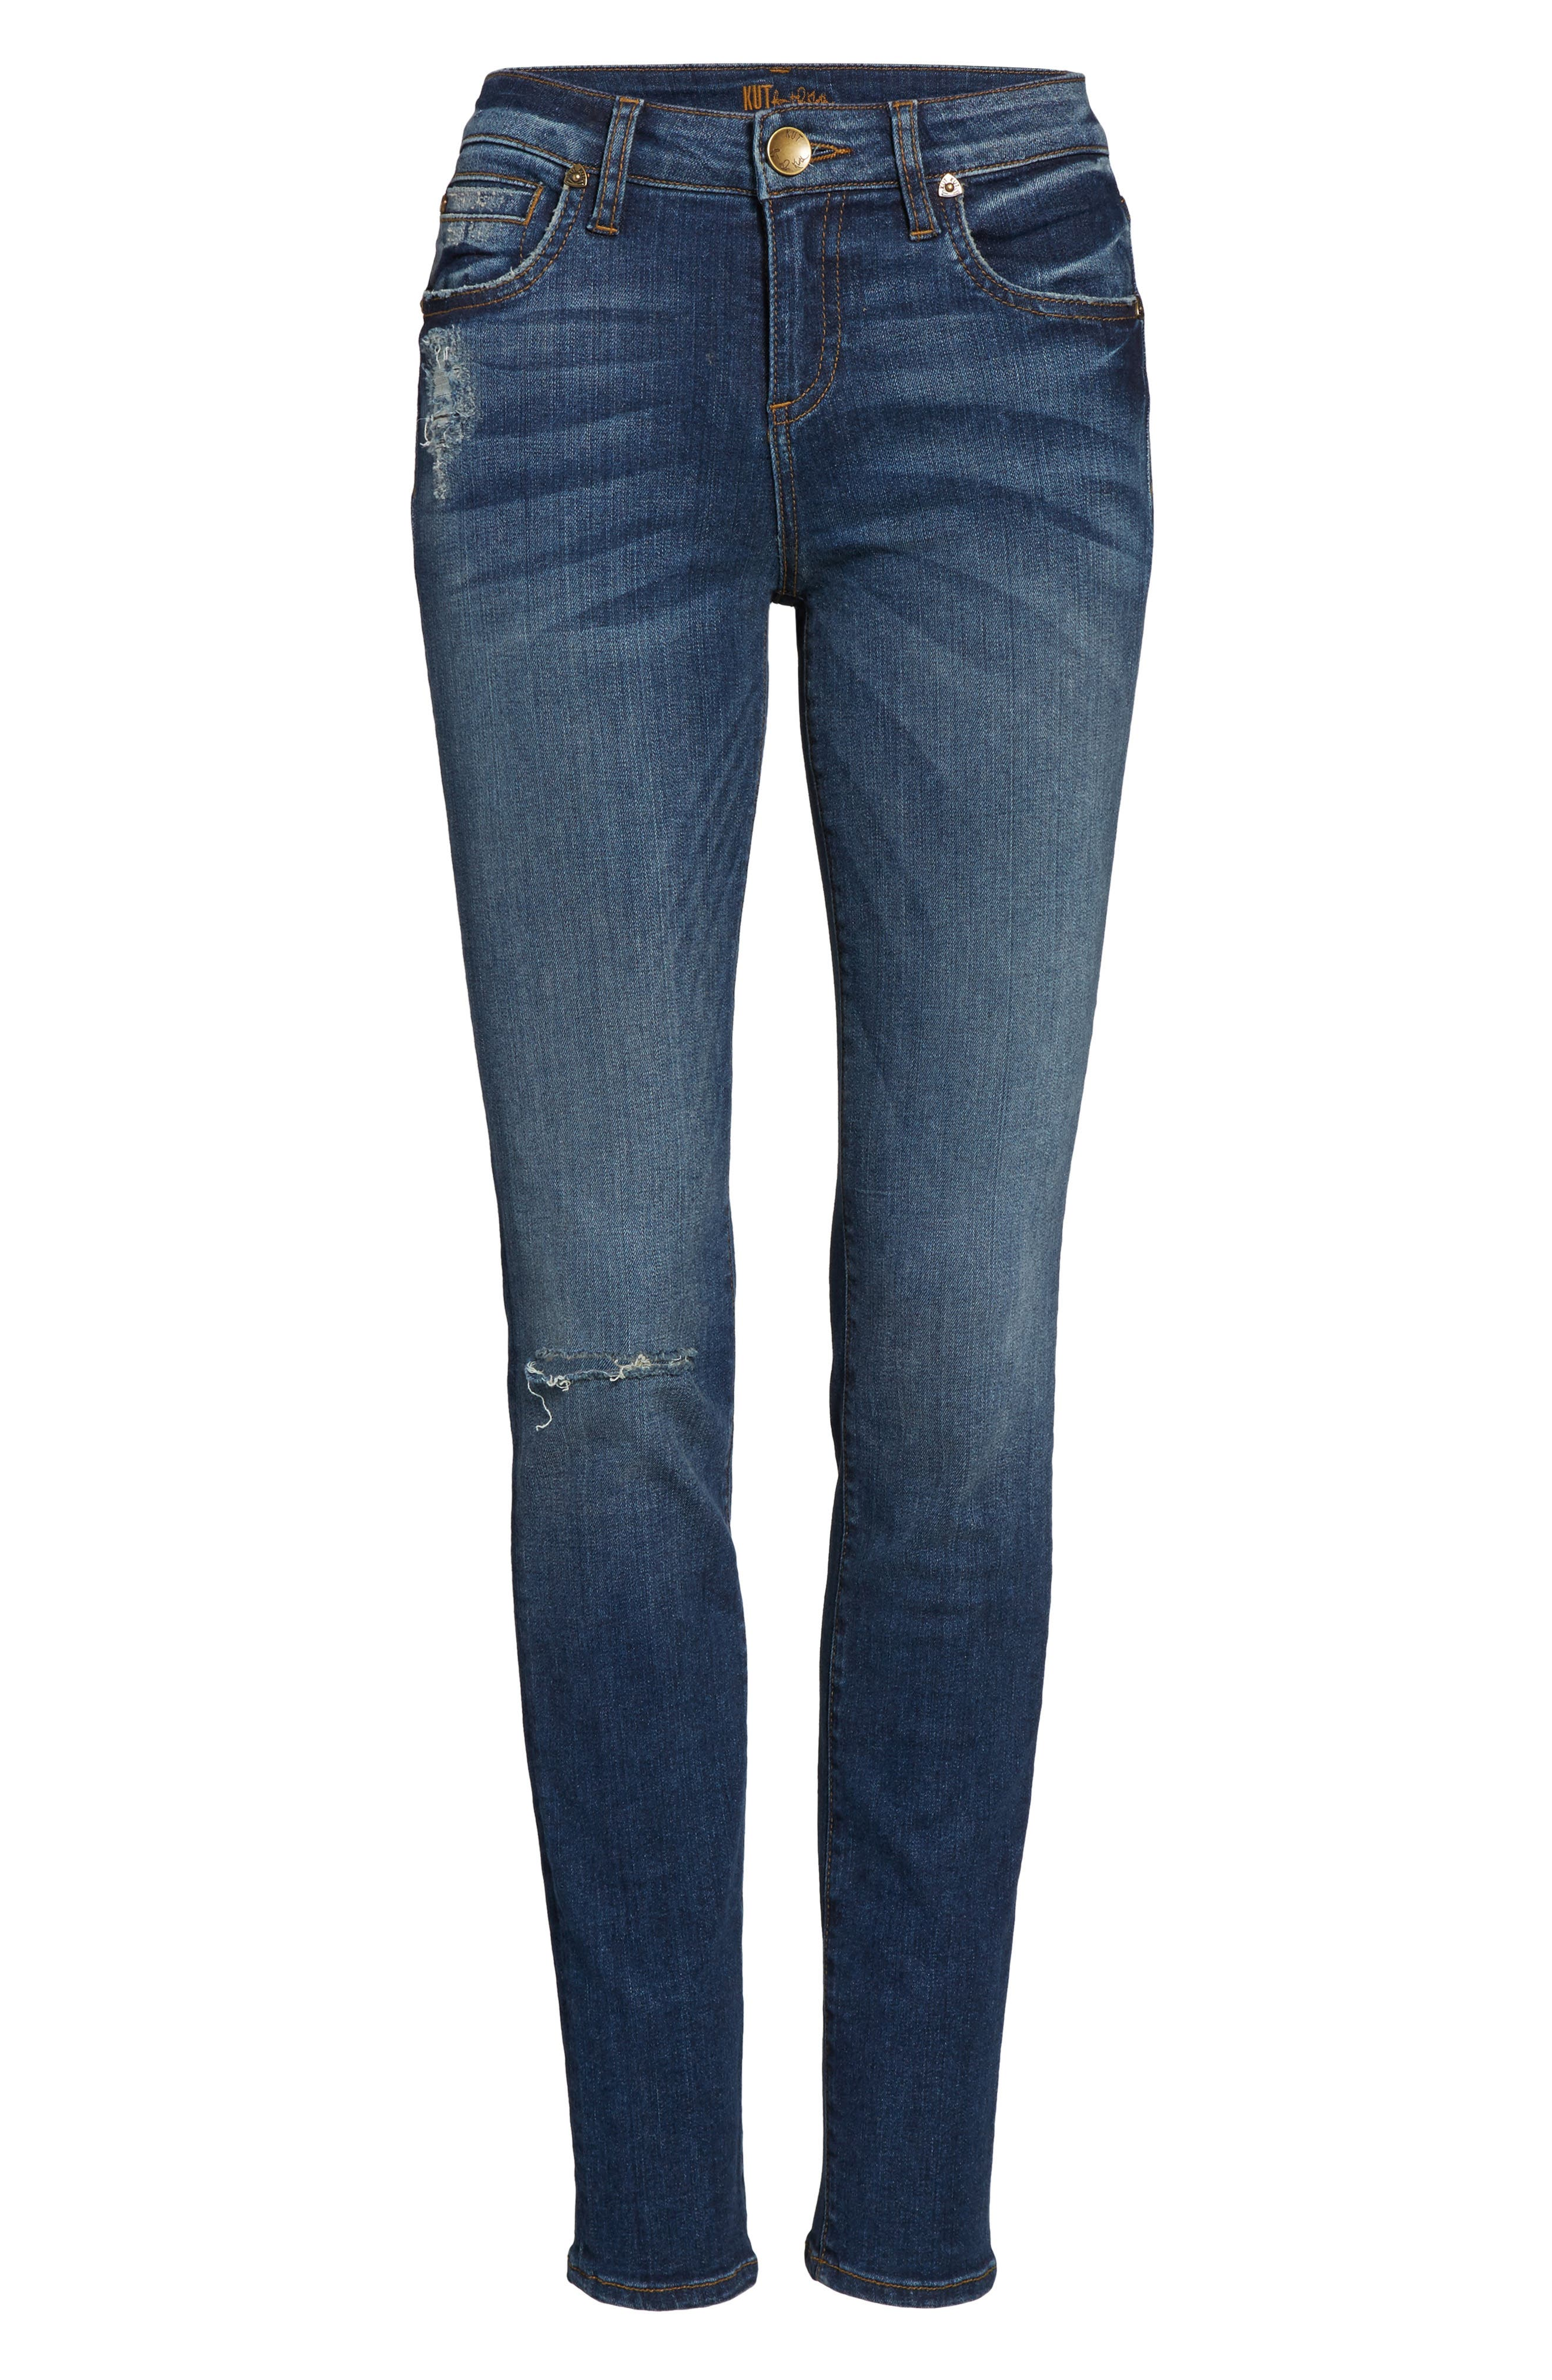 Diana Ripped Stretch Skinny Jeans,                             Alternate thumbnail 6, color,